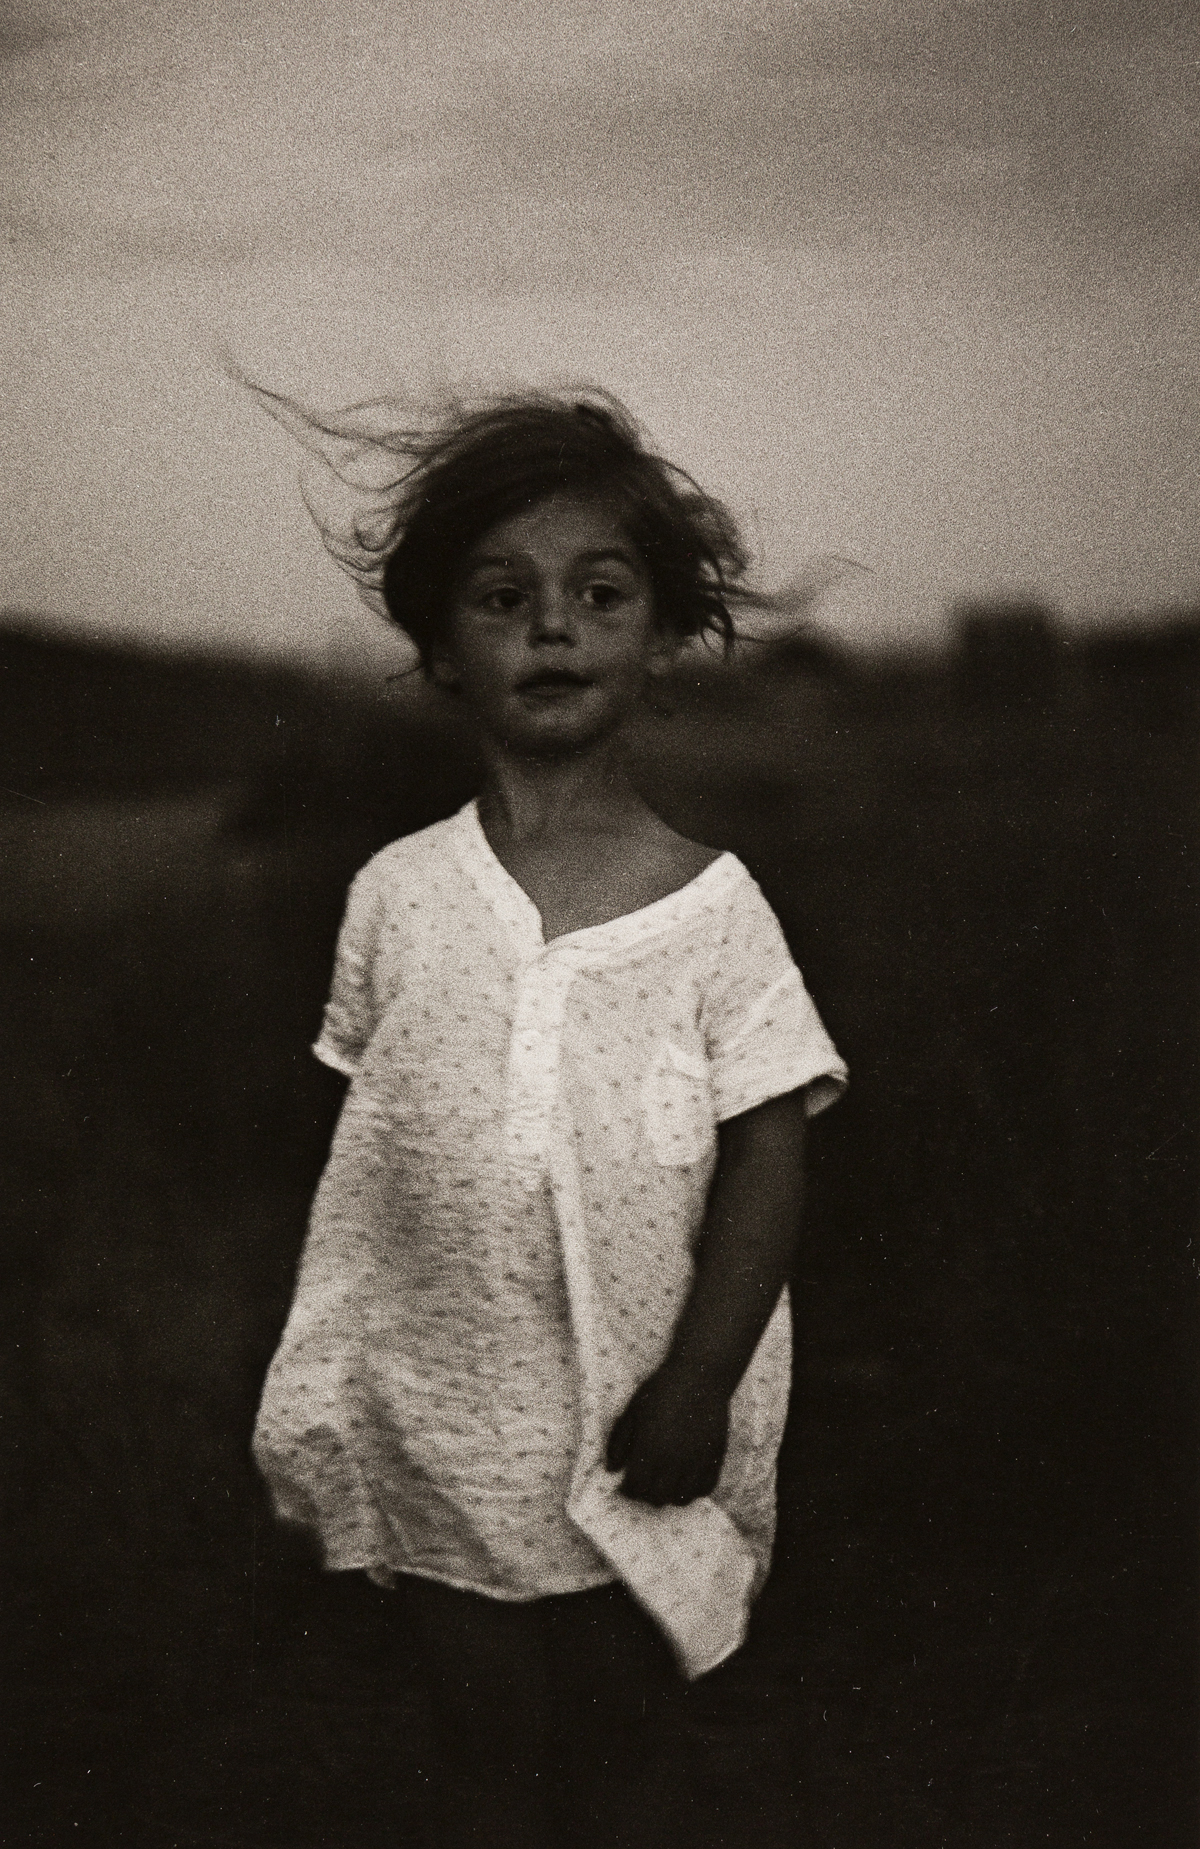 DIANE ARBUS (1923-1971)/NEIL SELKIRK (1947- ) Child in a Nightgown, Shelter Island, NY.